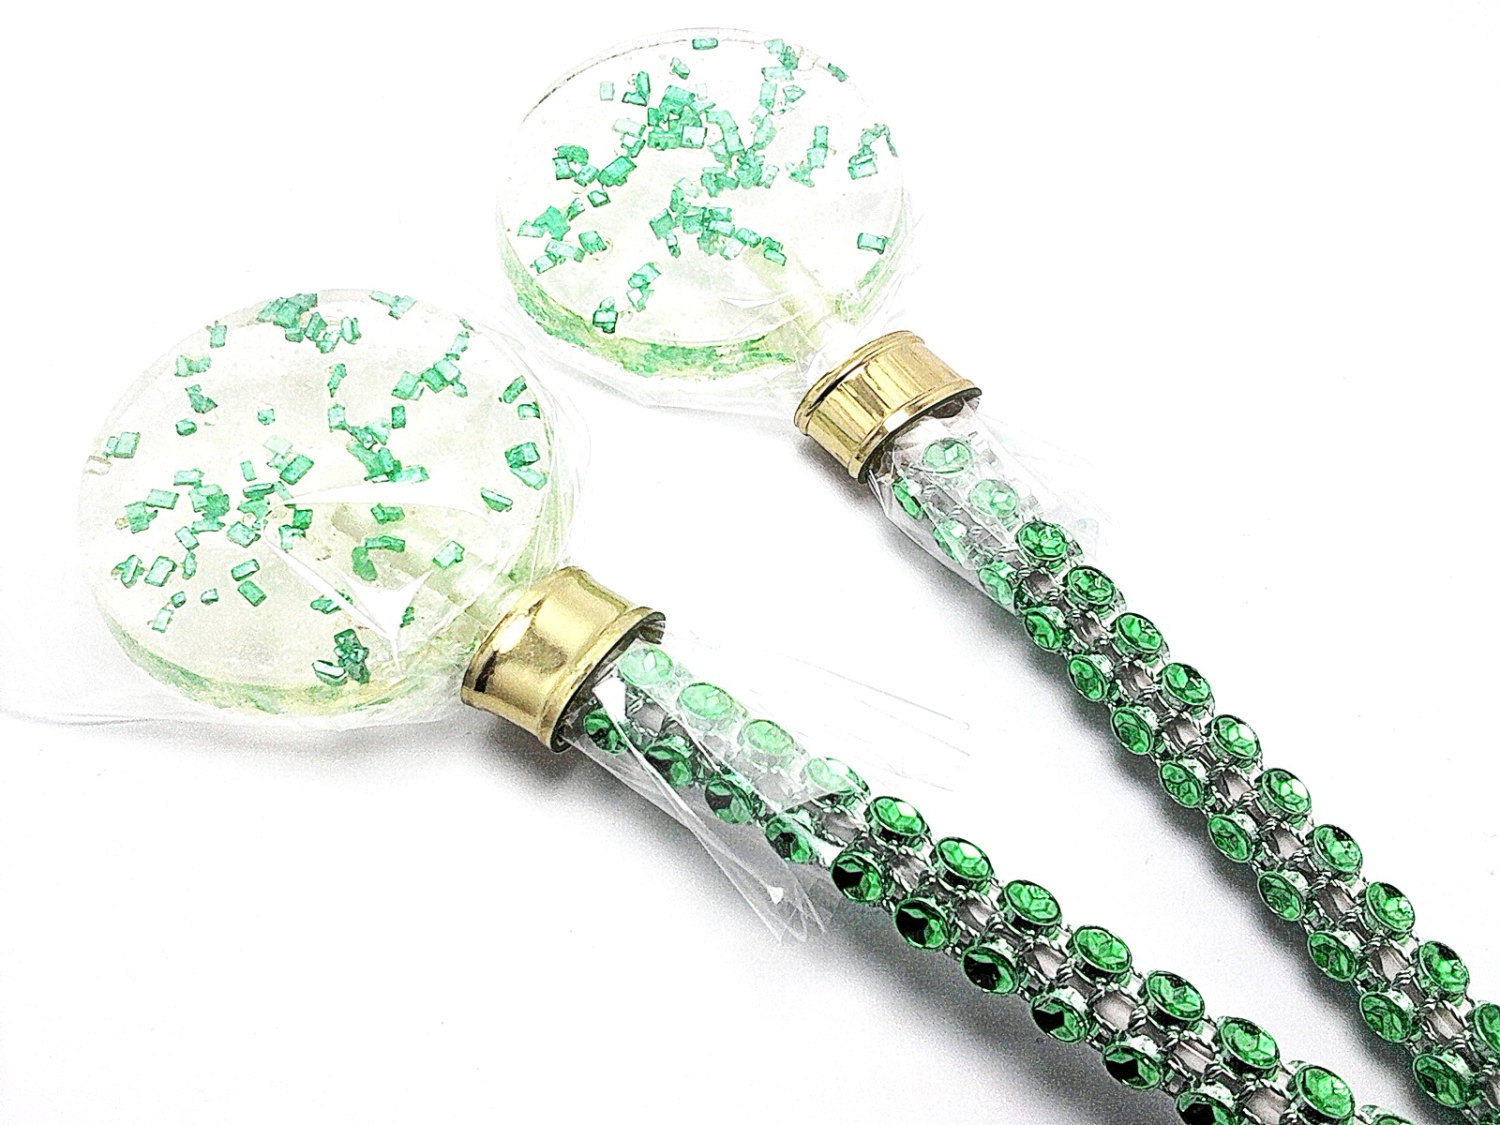 12 - GREEN CRYSTAL LOLLIPOPS - Wedding, Bridal Shower, and Party Favors